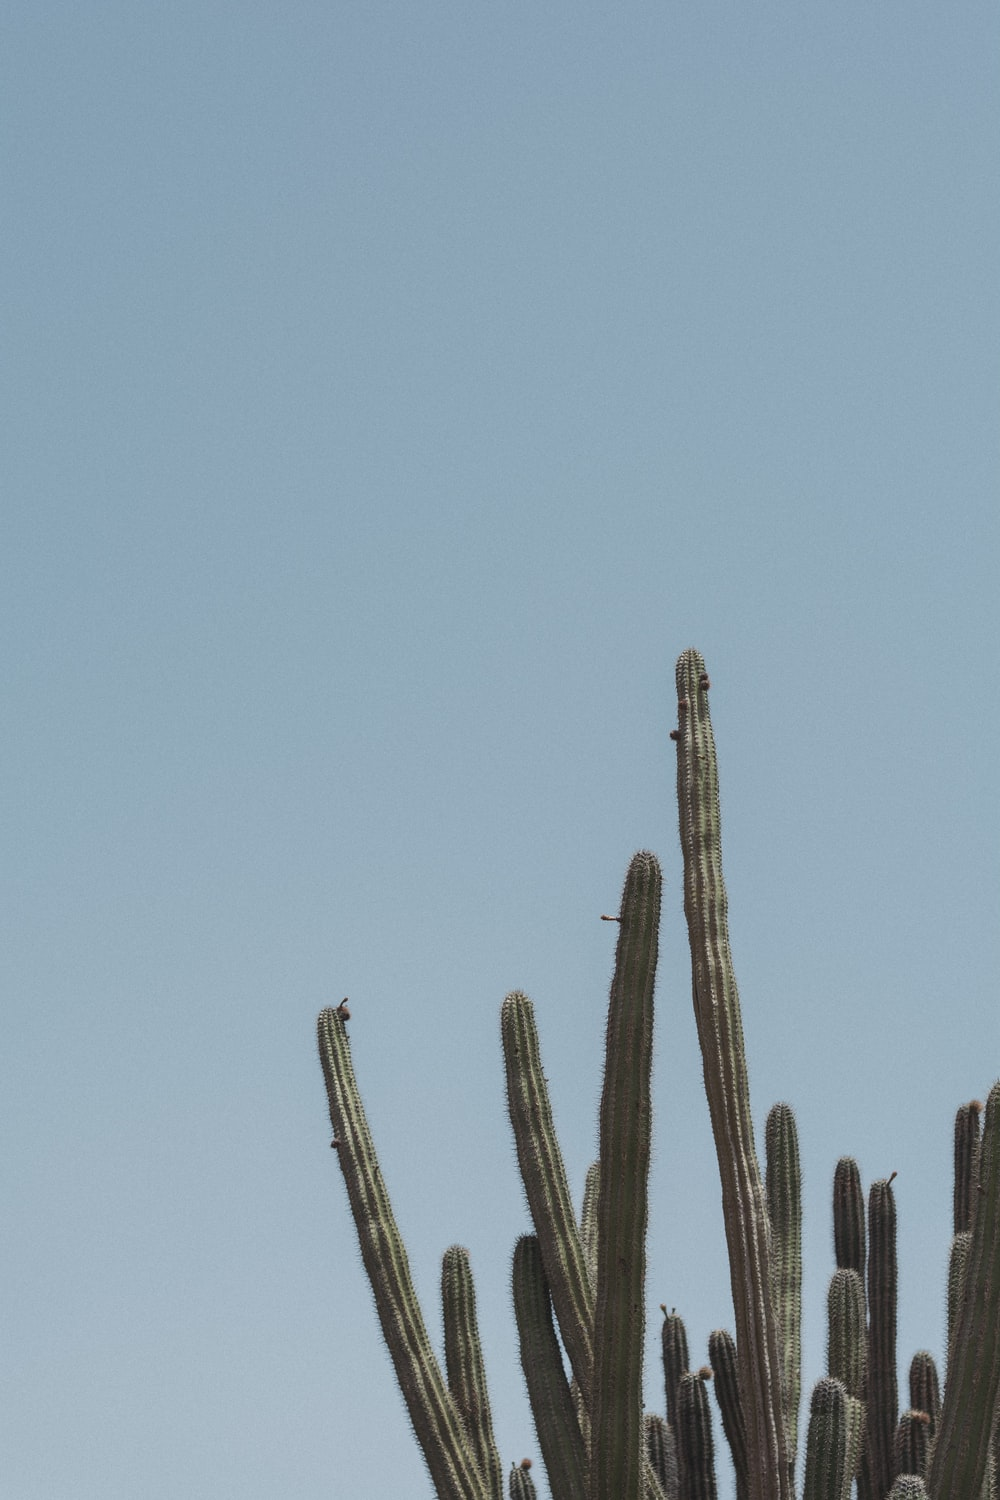 cactus during day